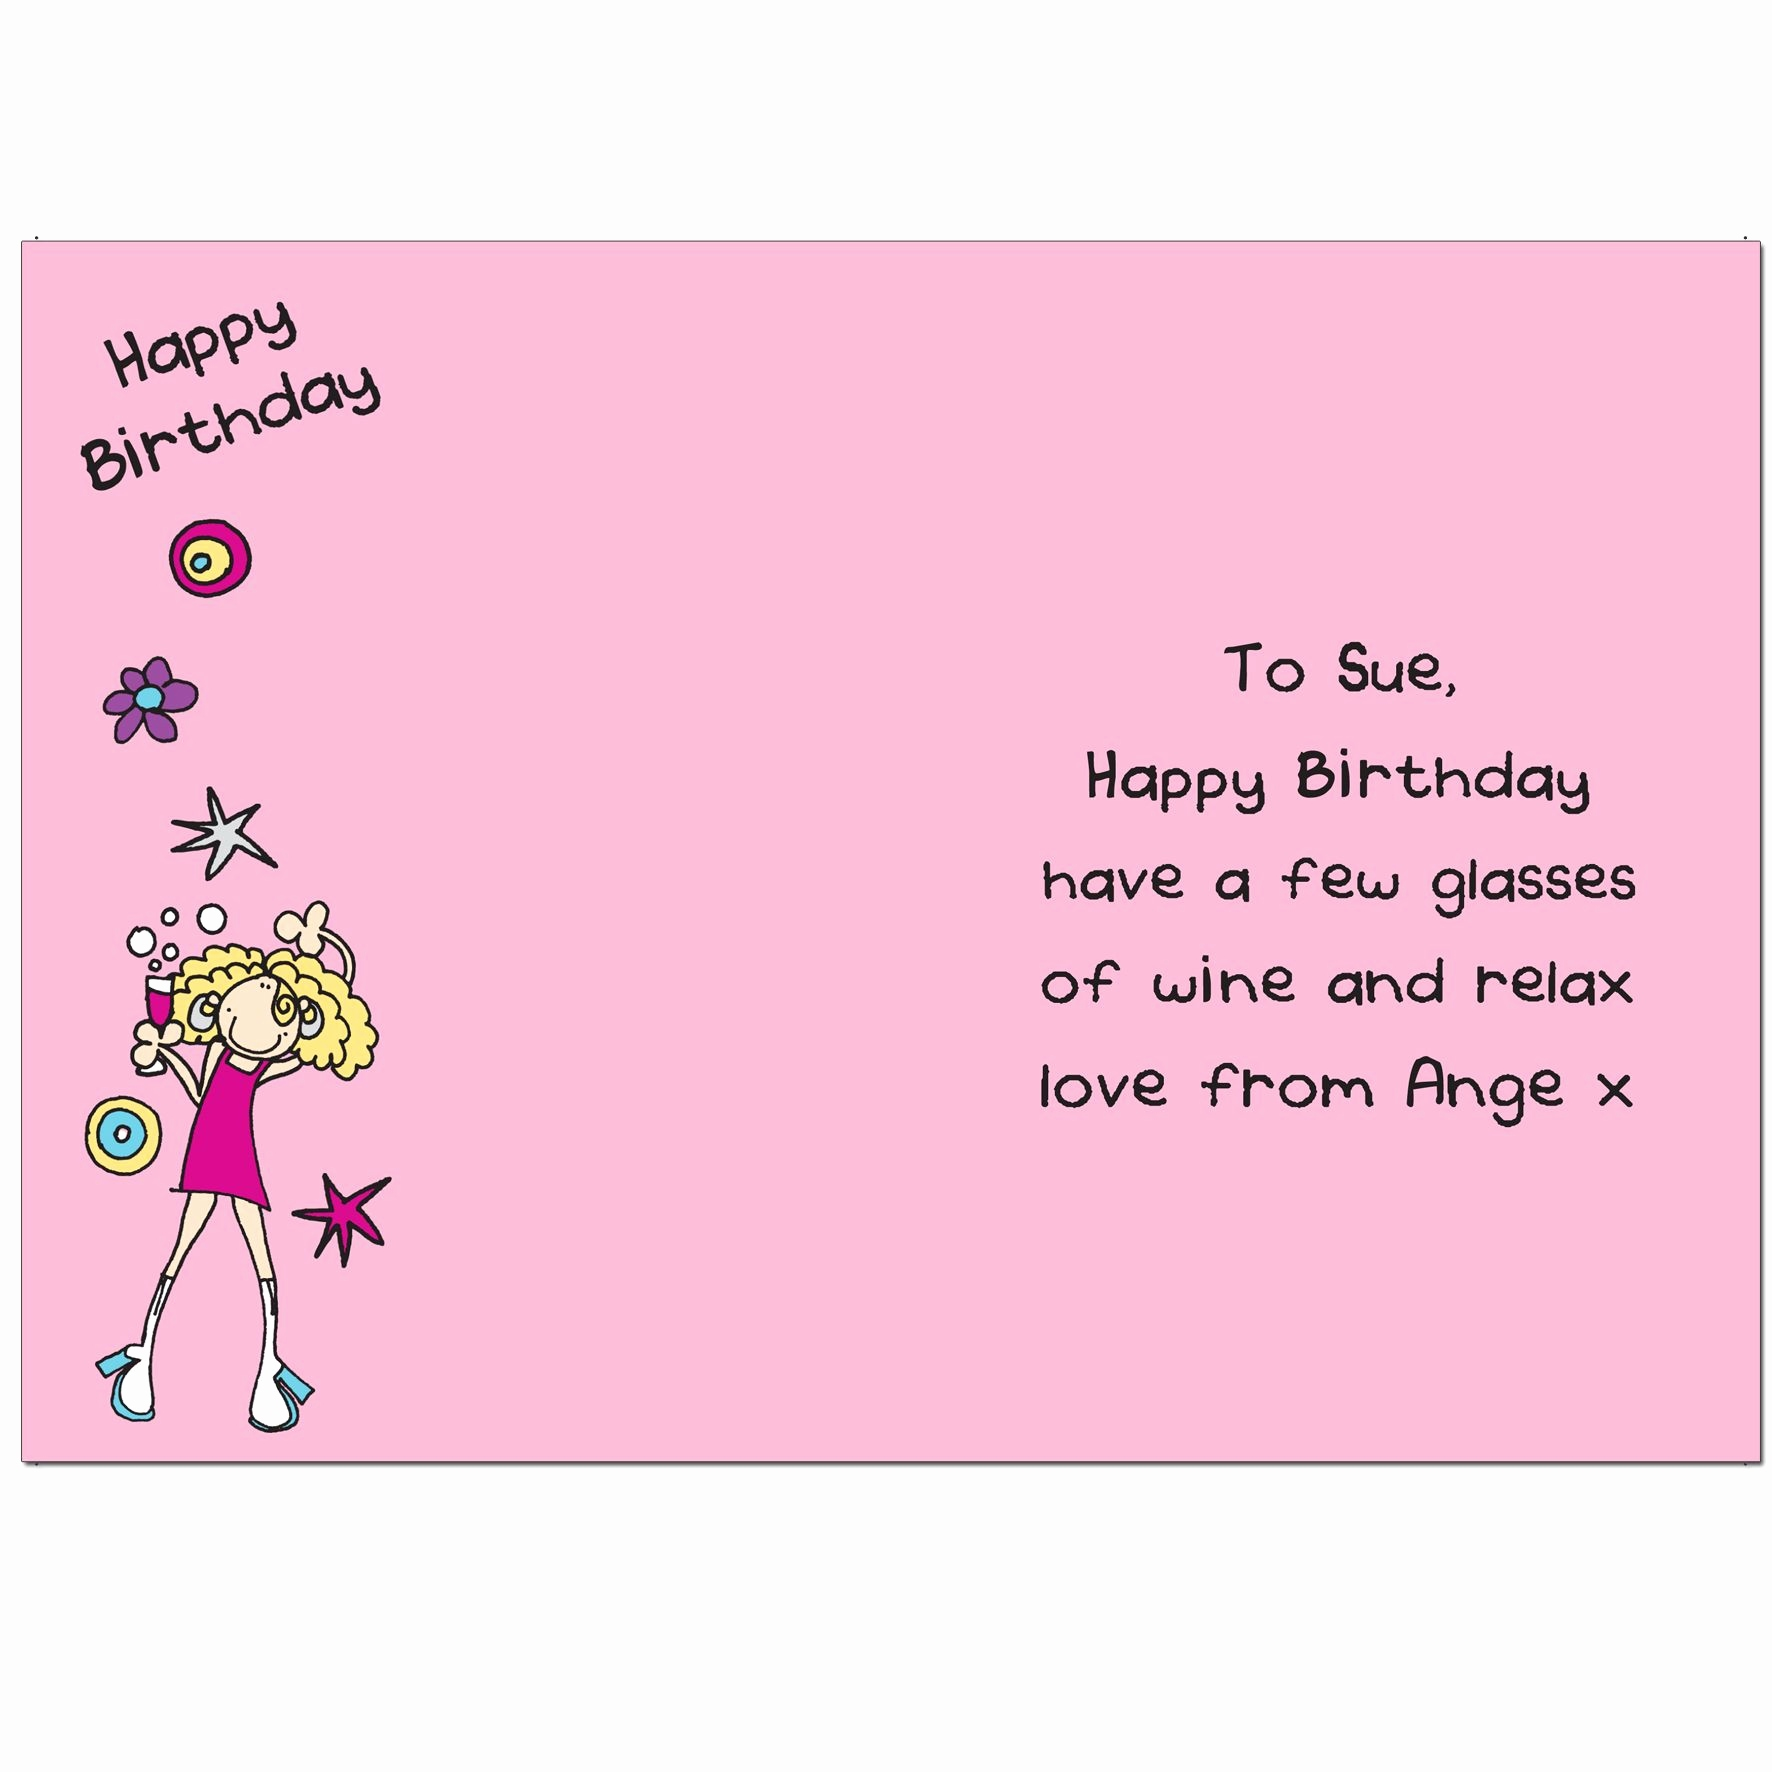 Funny Message For Sister Birthday Cute Cards